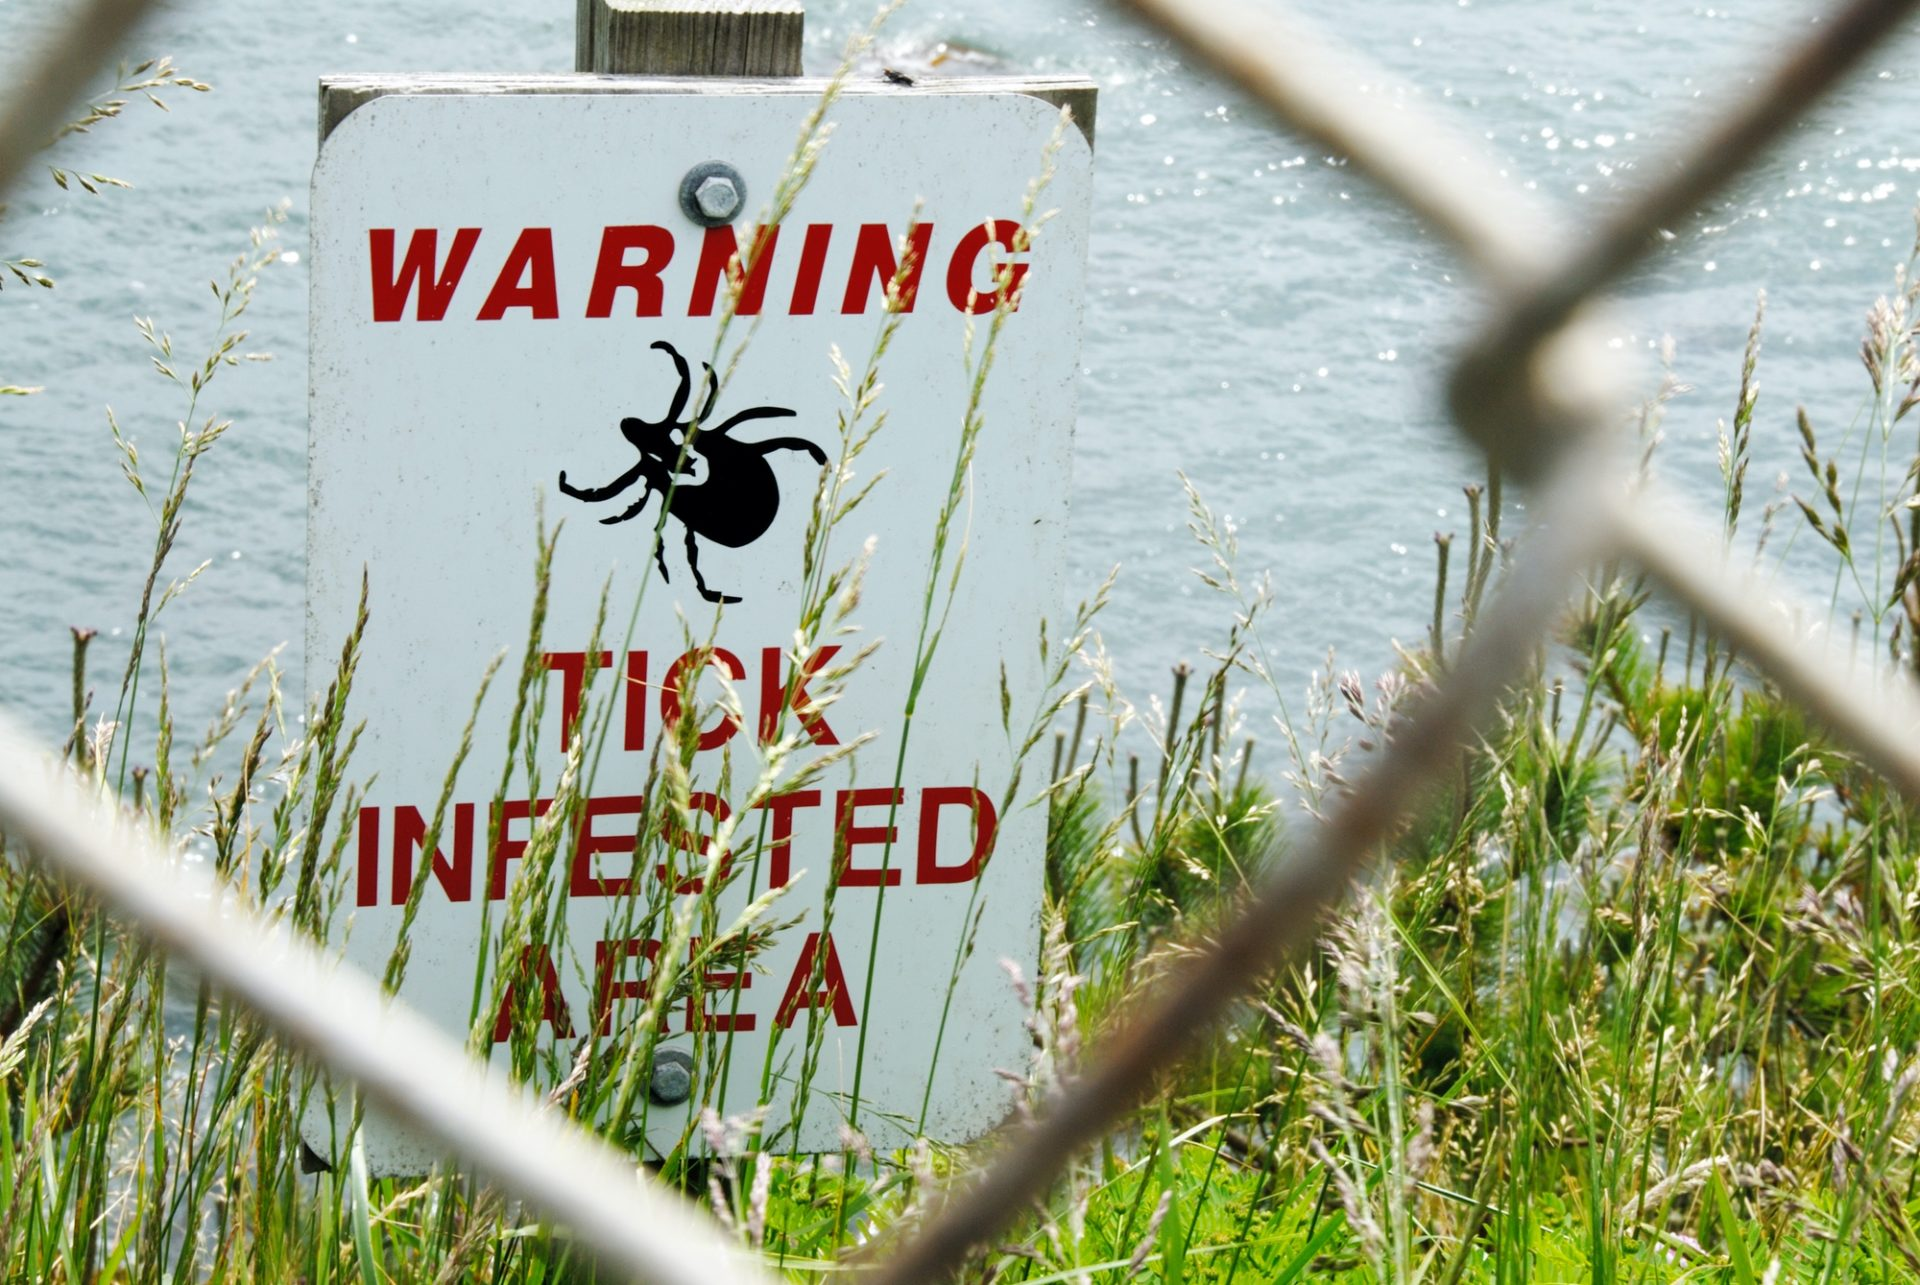 Lyme Disease and Other Tick Borne Illnesses - Q&A with Dr. Sean Beckmann 3